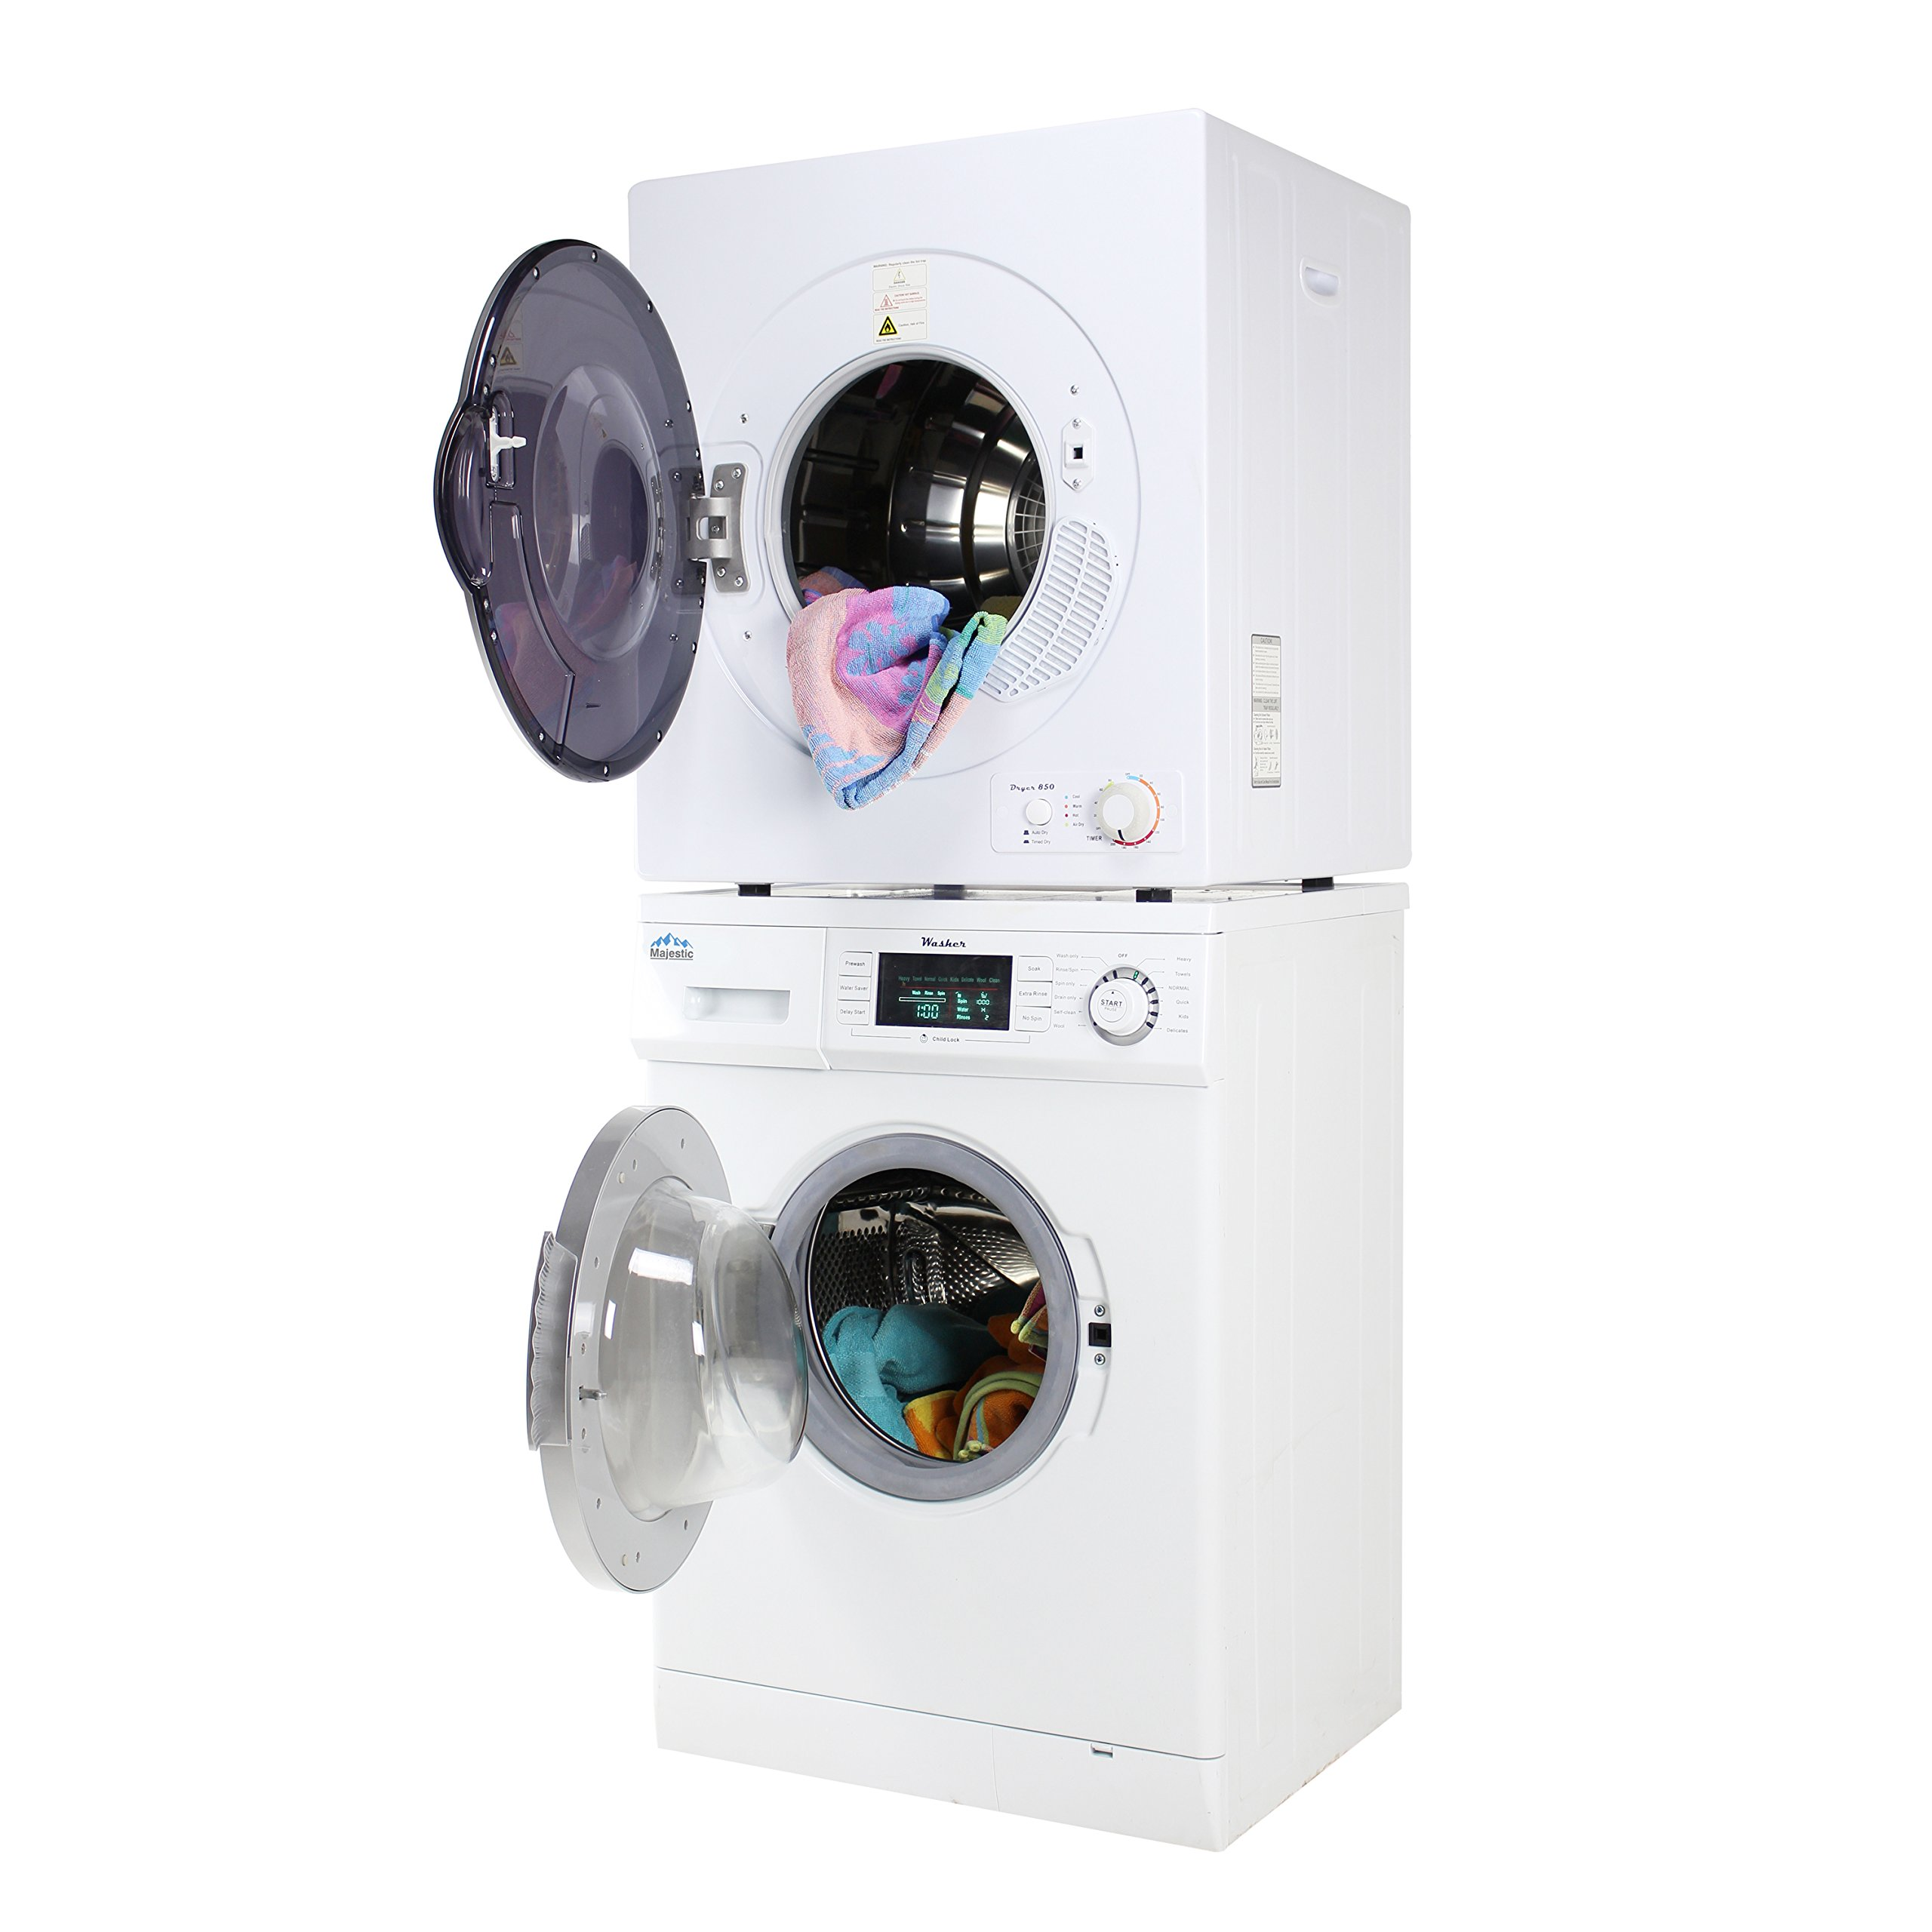 Majestic Stackable Compact Super Washer Mj824w And Short Dryer Mj850d Set